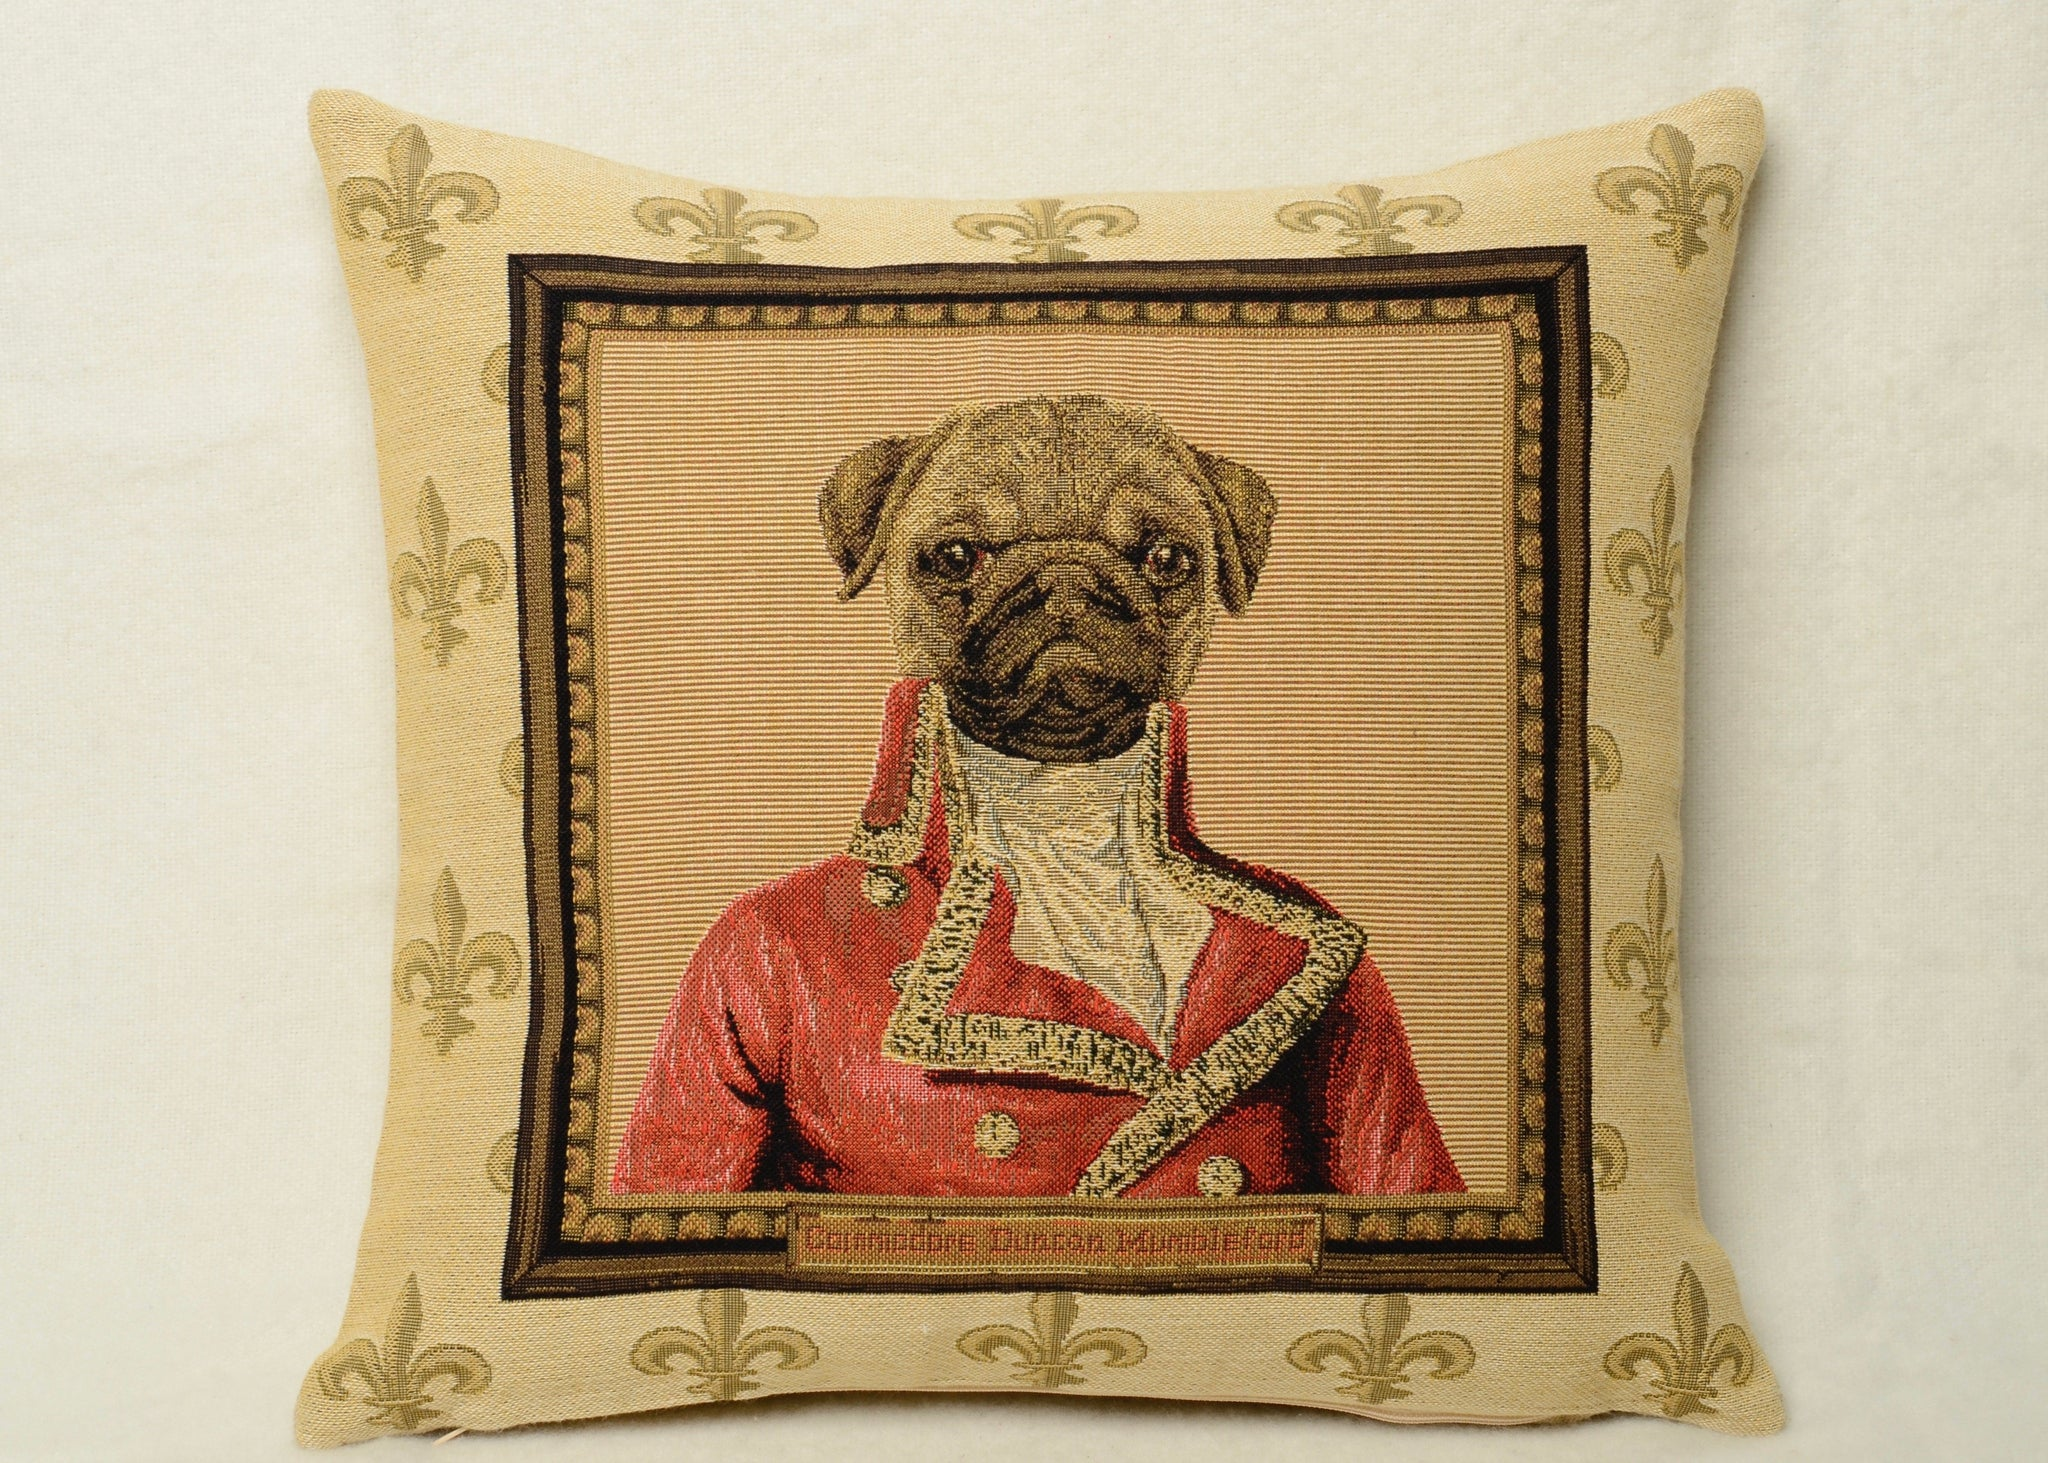 Framed Pug Cushion Cover with Fleur de Lys Background- 13x12""